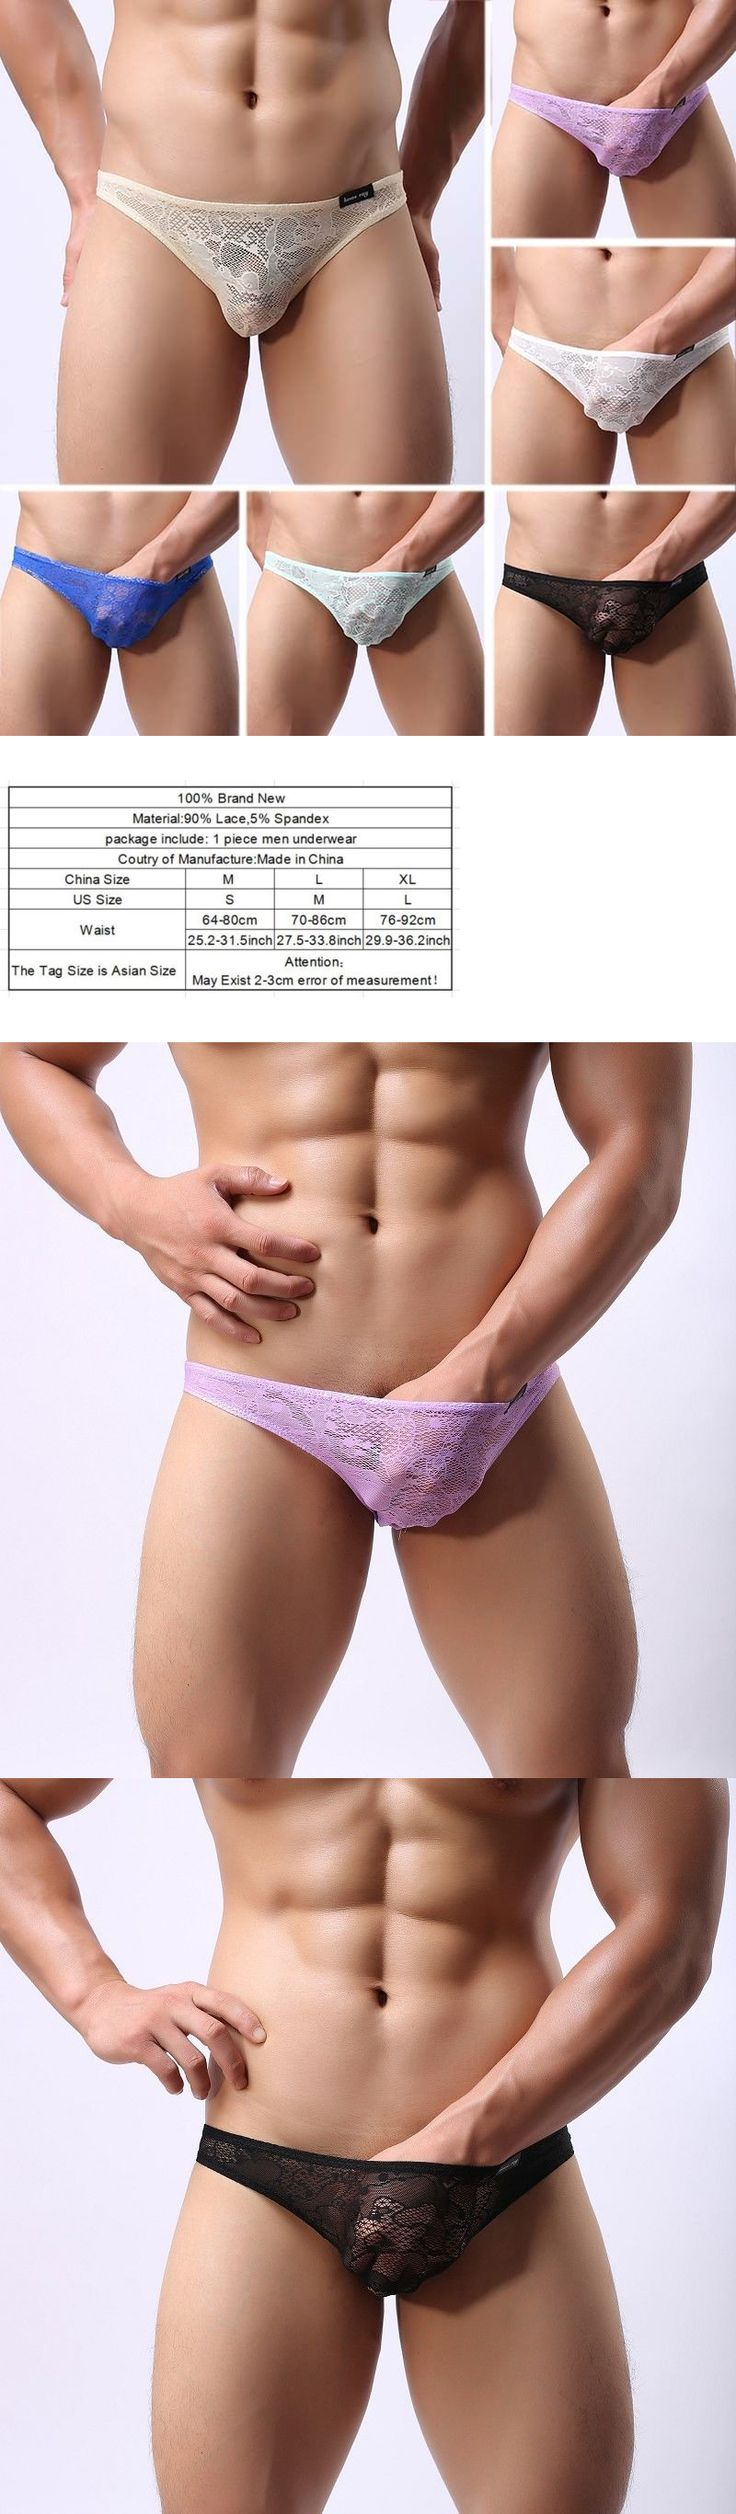 Man Boxers: New Mens Underwear Bulge Pouch Trunks Boxer Briefs Soft Shorts Underpants S M L -> BUY IT NOW ONLY: $19.98 on eBay!